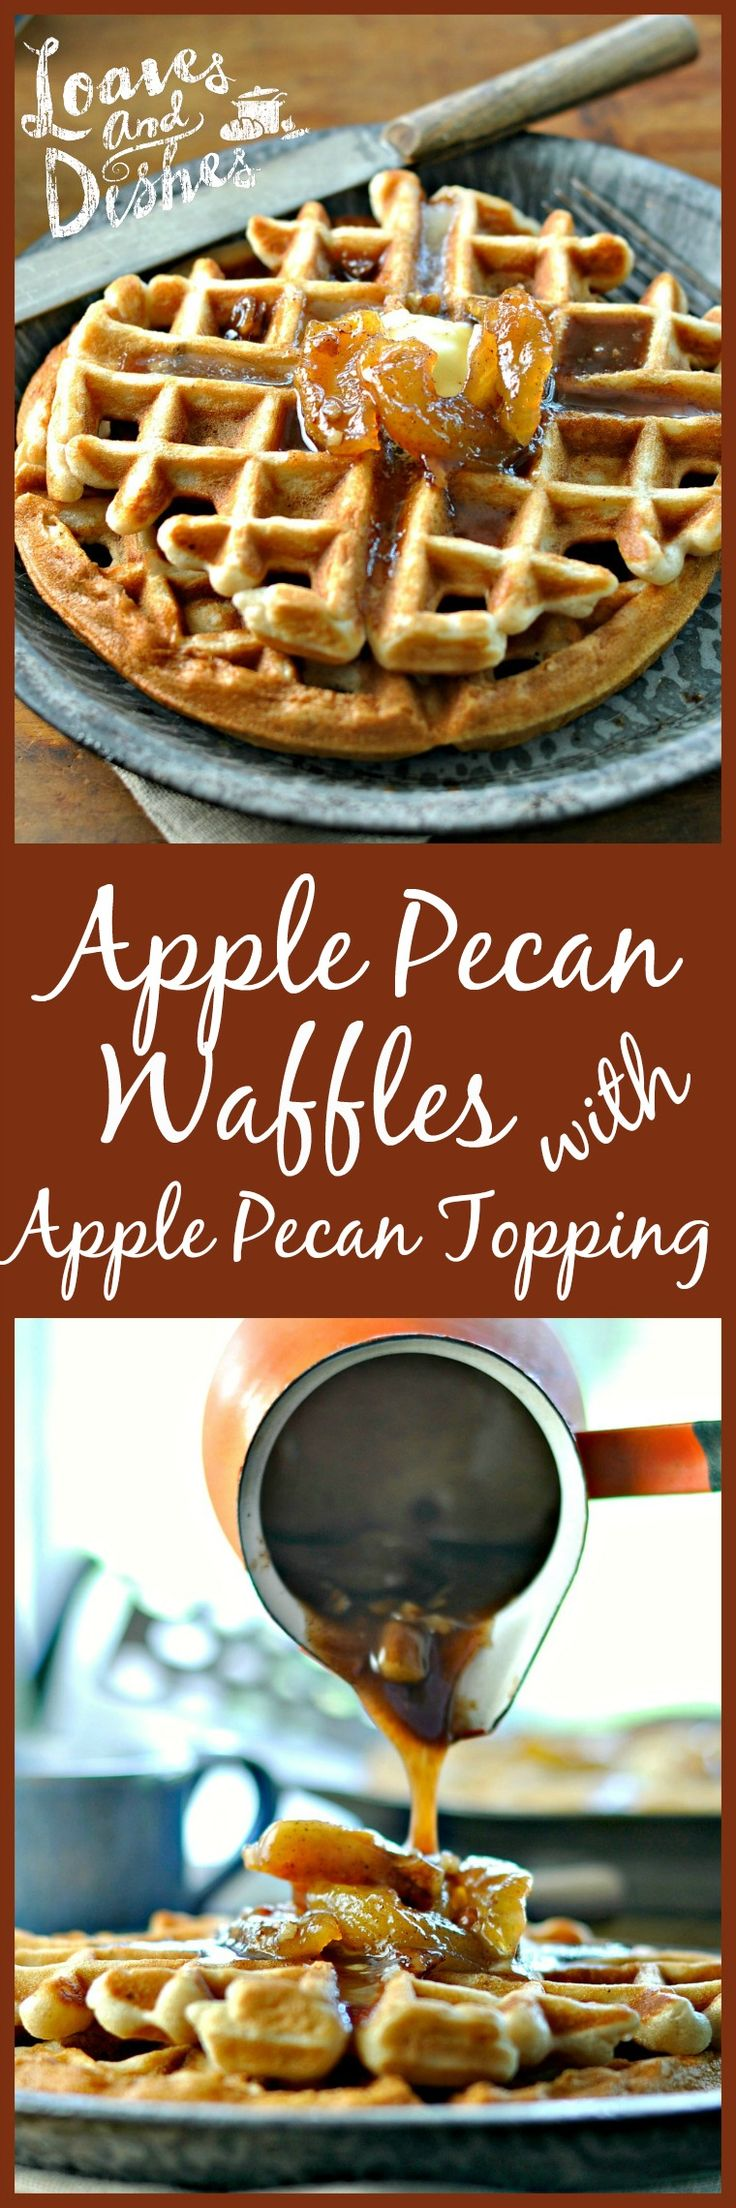 Apple Pecan Waffles with Apple Pecan Topping | Recipe ...